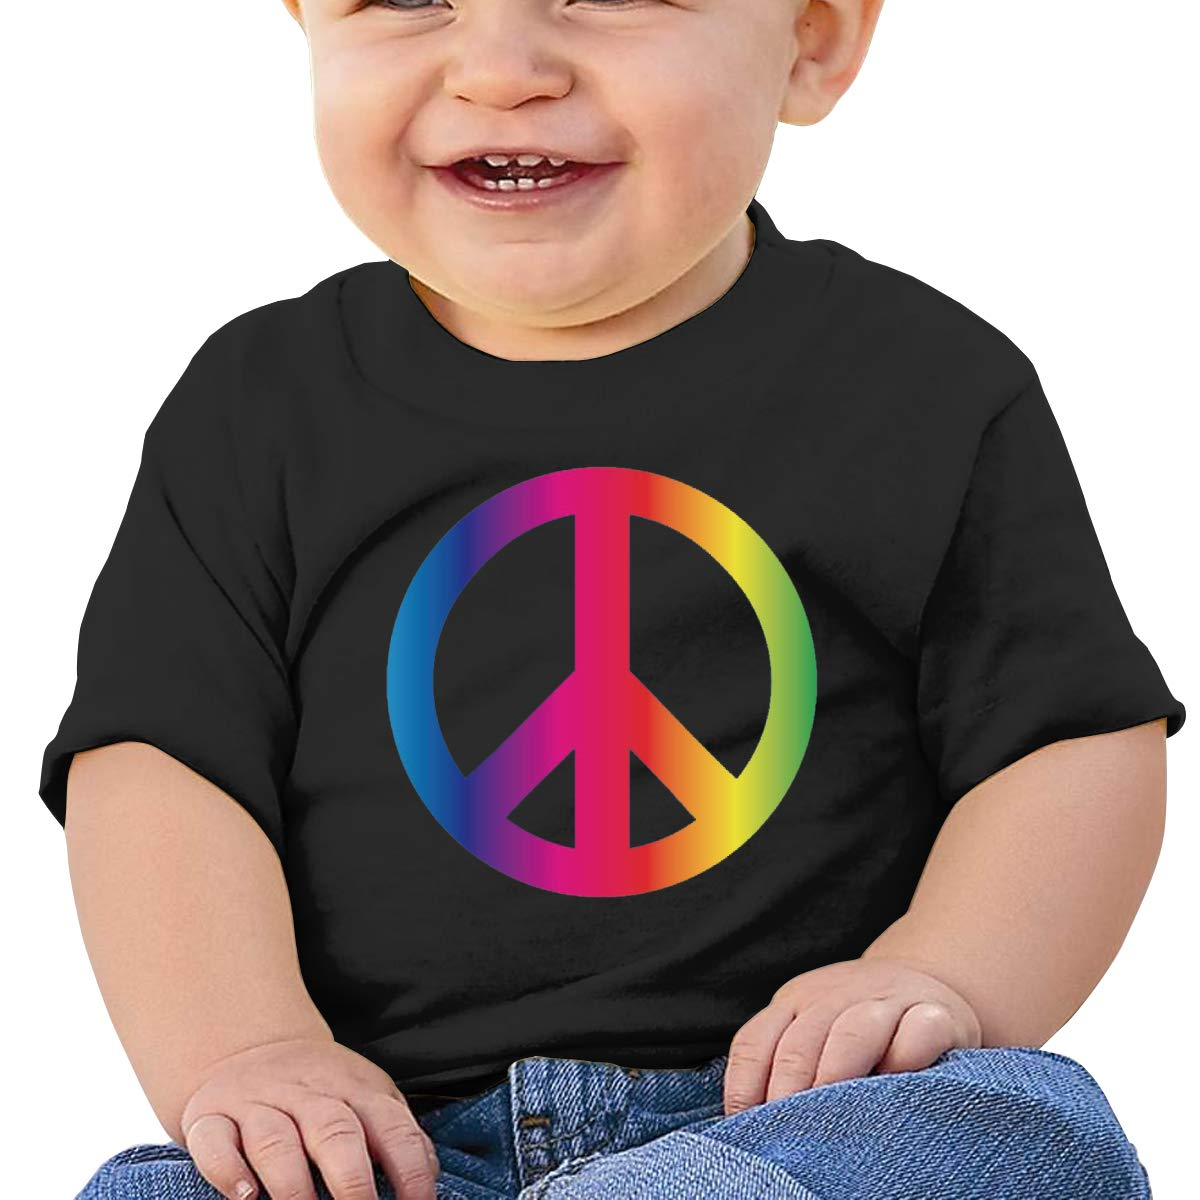 Rainbow Peace Sign Pride Toddler Short-Sleeve Tee for Boy Girl Infant Kids T-Shirt On Newborn 6-18 Months